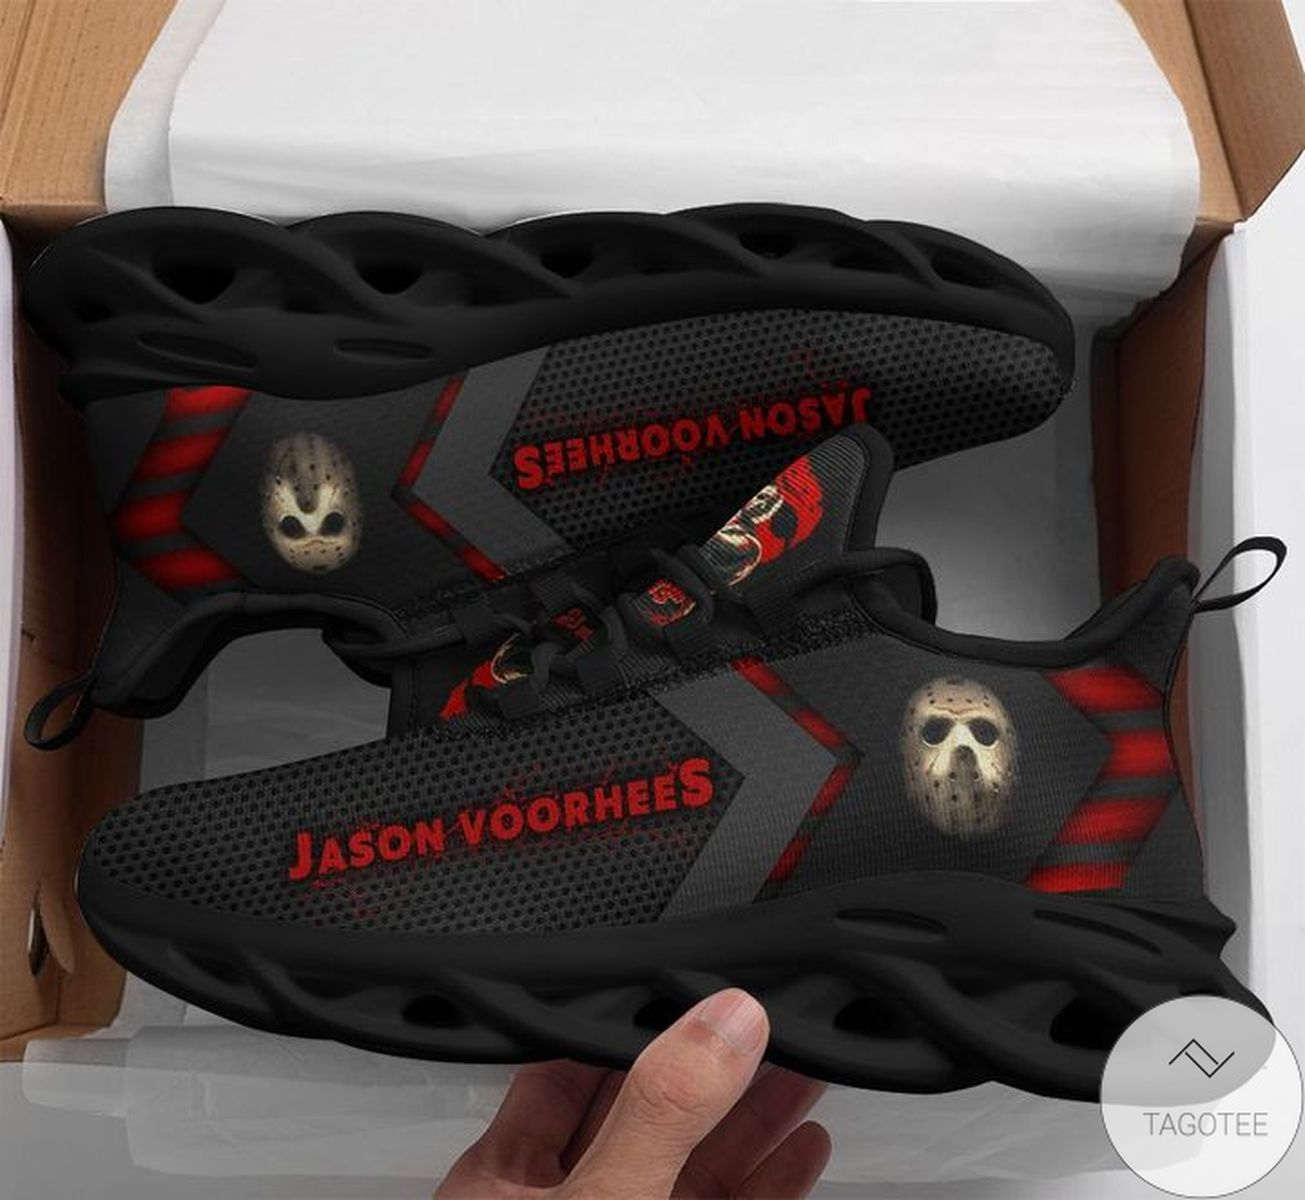 Jason Voorhees Max Soul Shoes